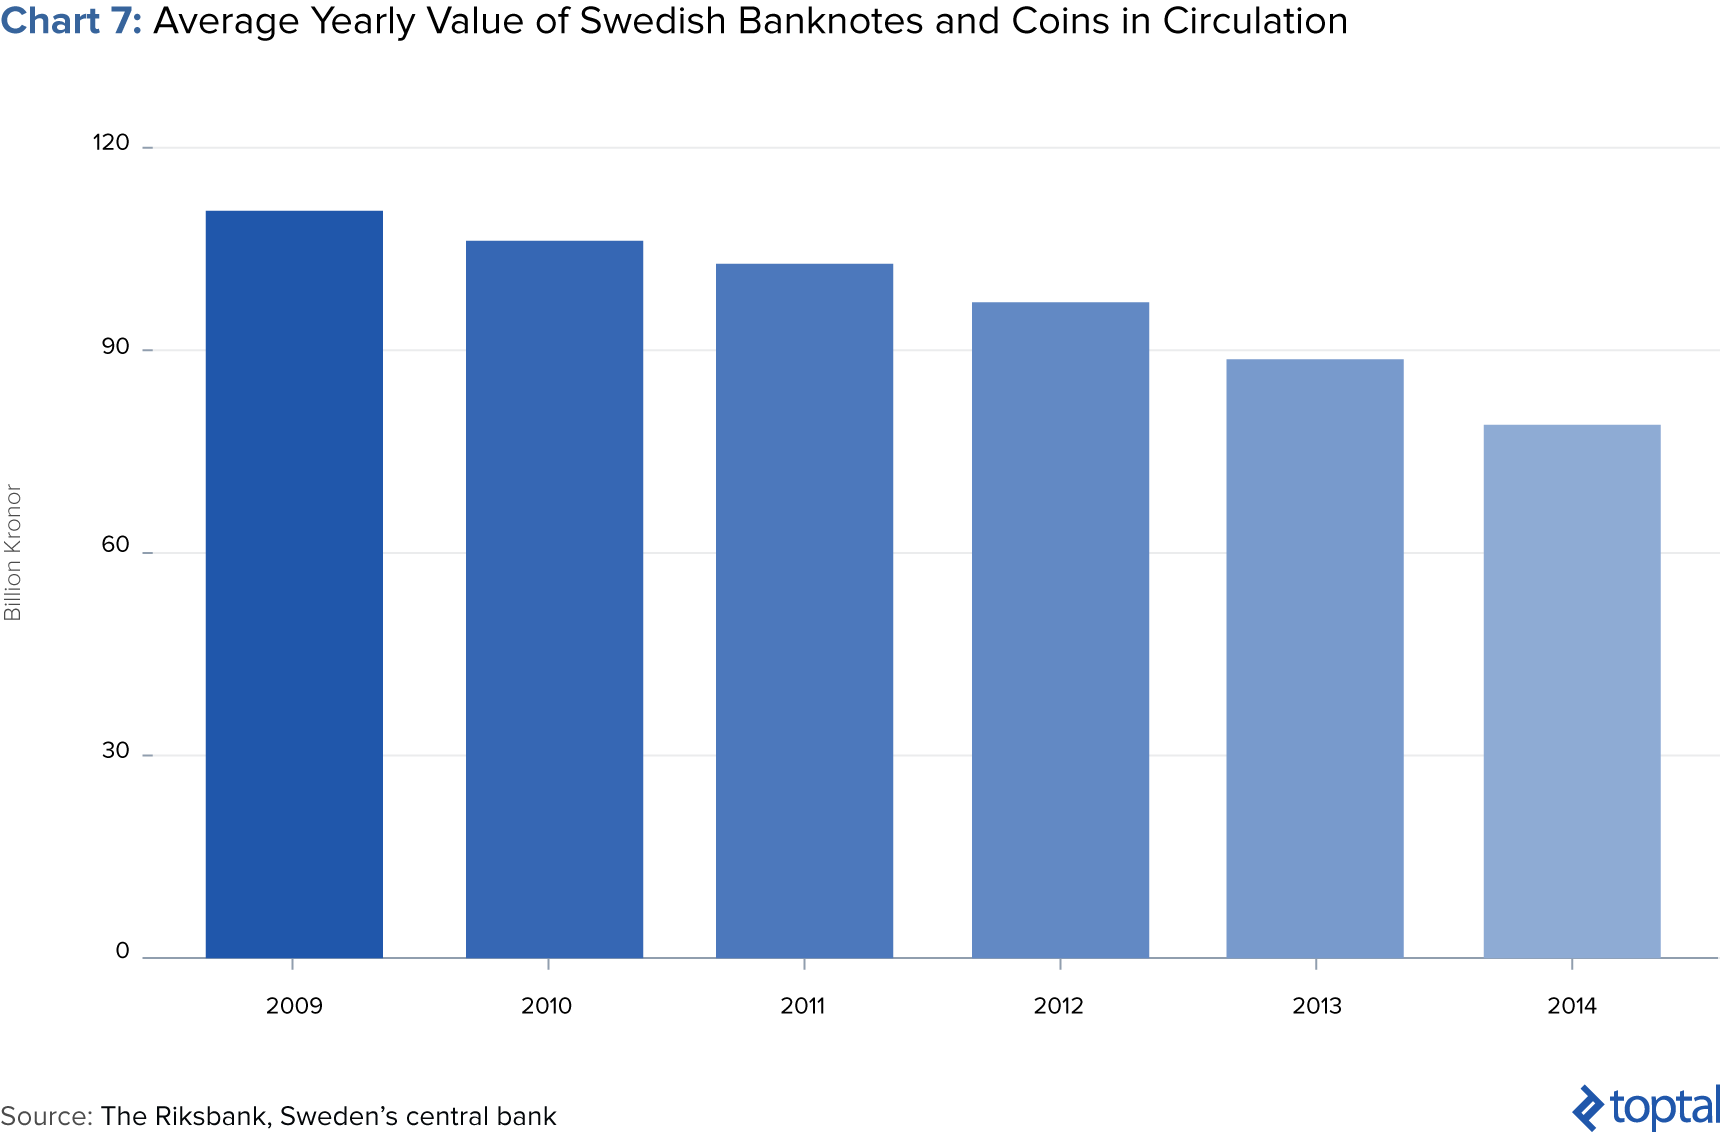 Image of Chart 7: Average Yearly Value of Swedish Banknotes and Coins in Circulation